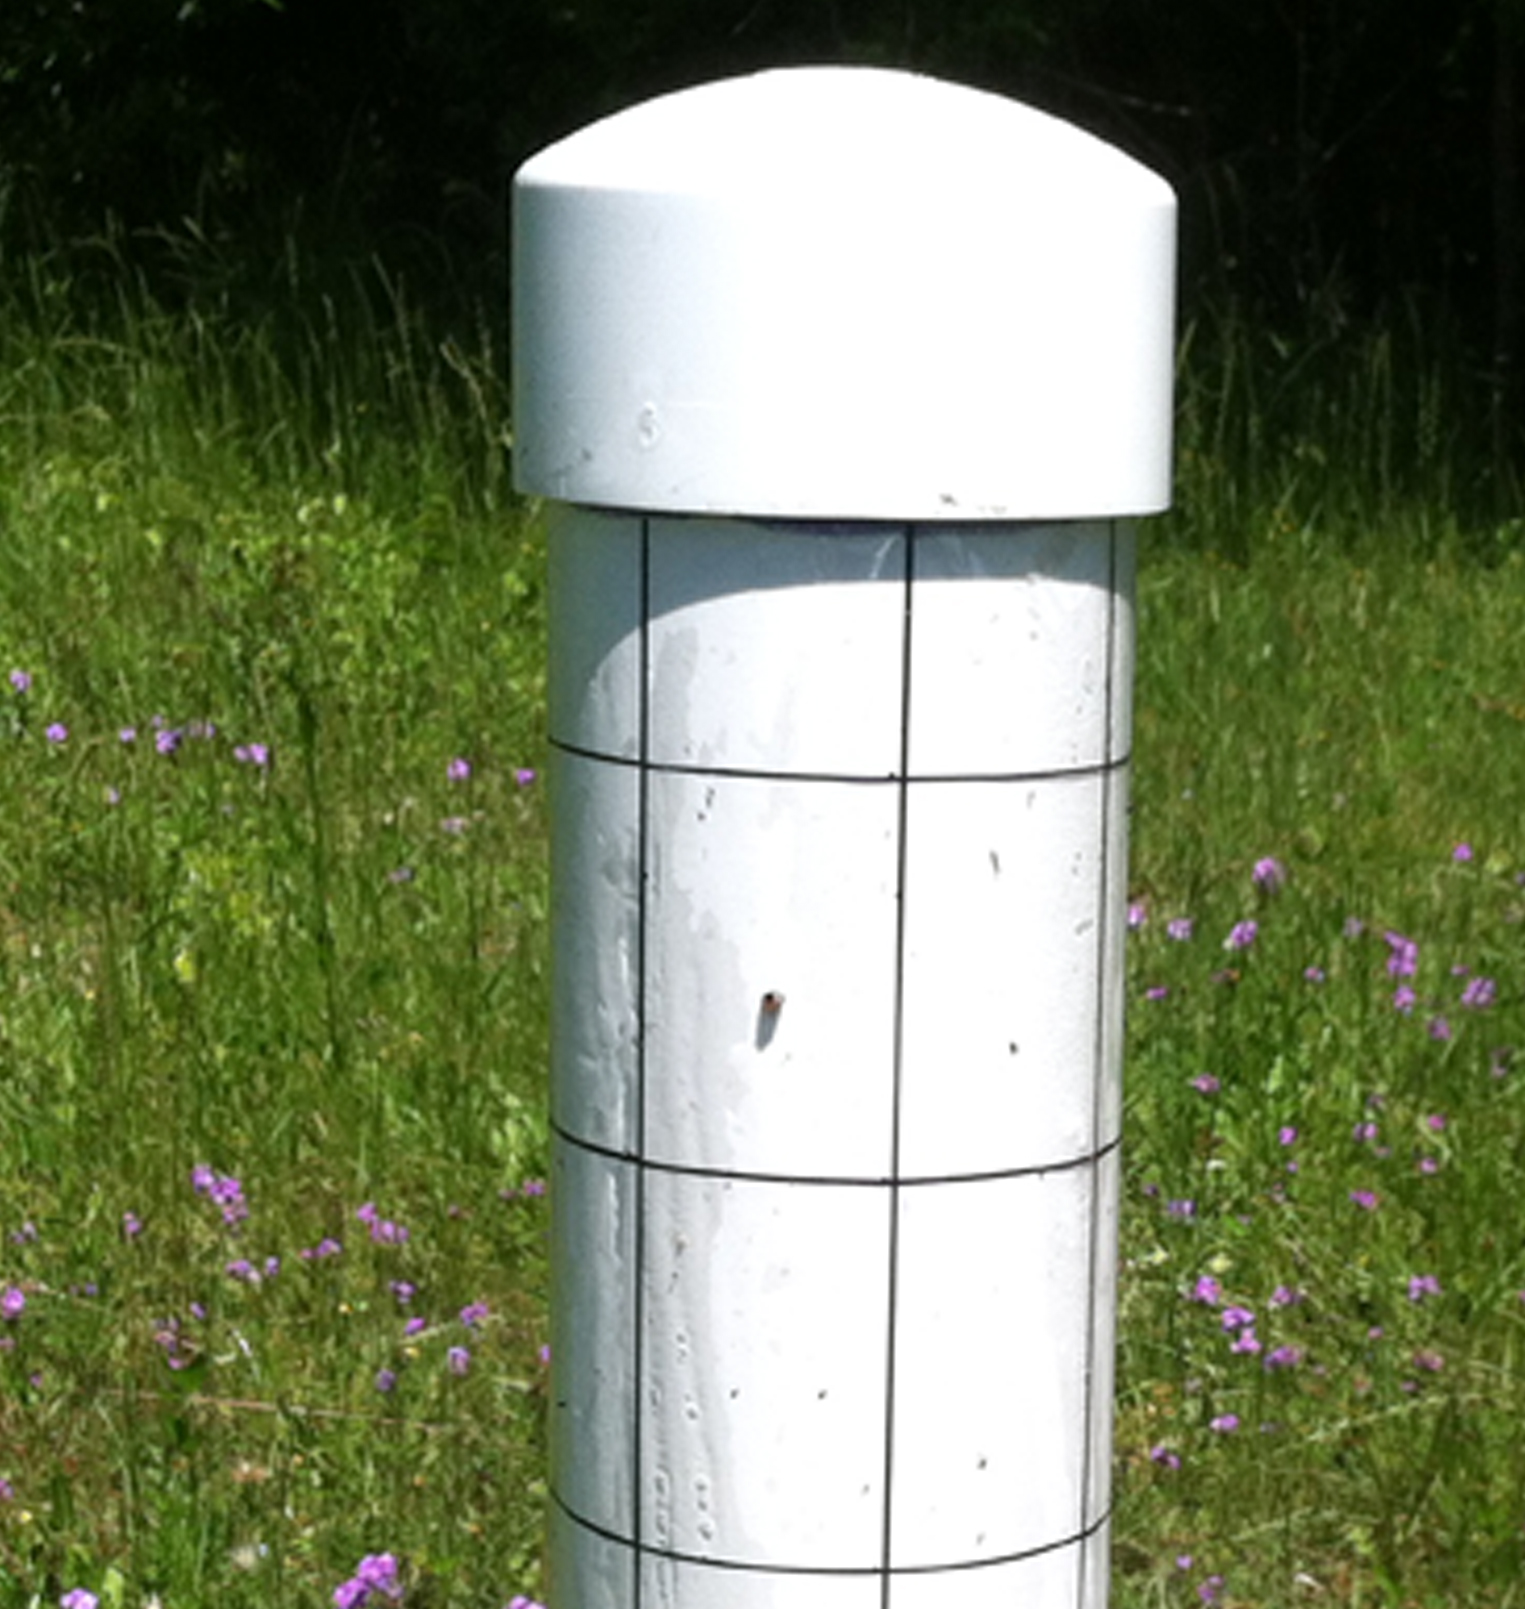 This is an example of a kudzu bug trap currently deployed at a Dooly County farm.